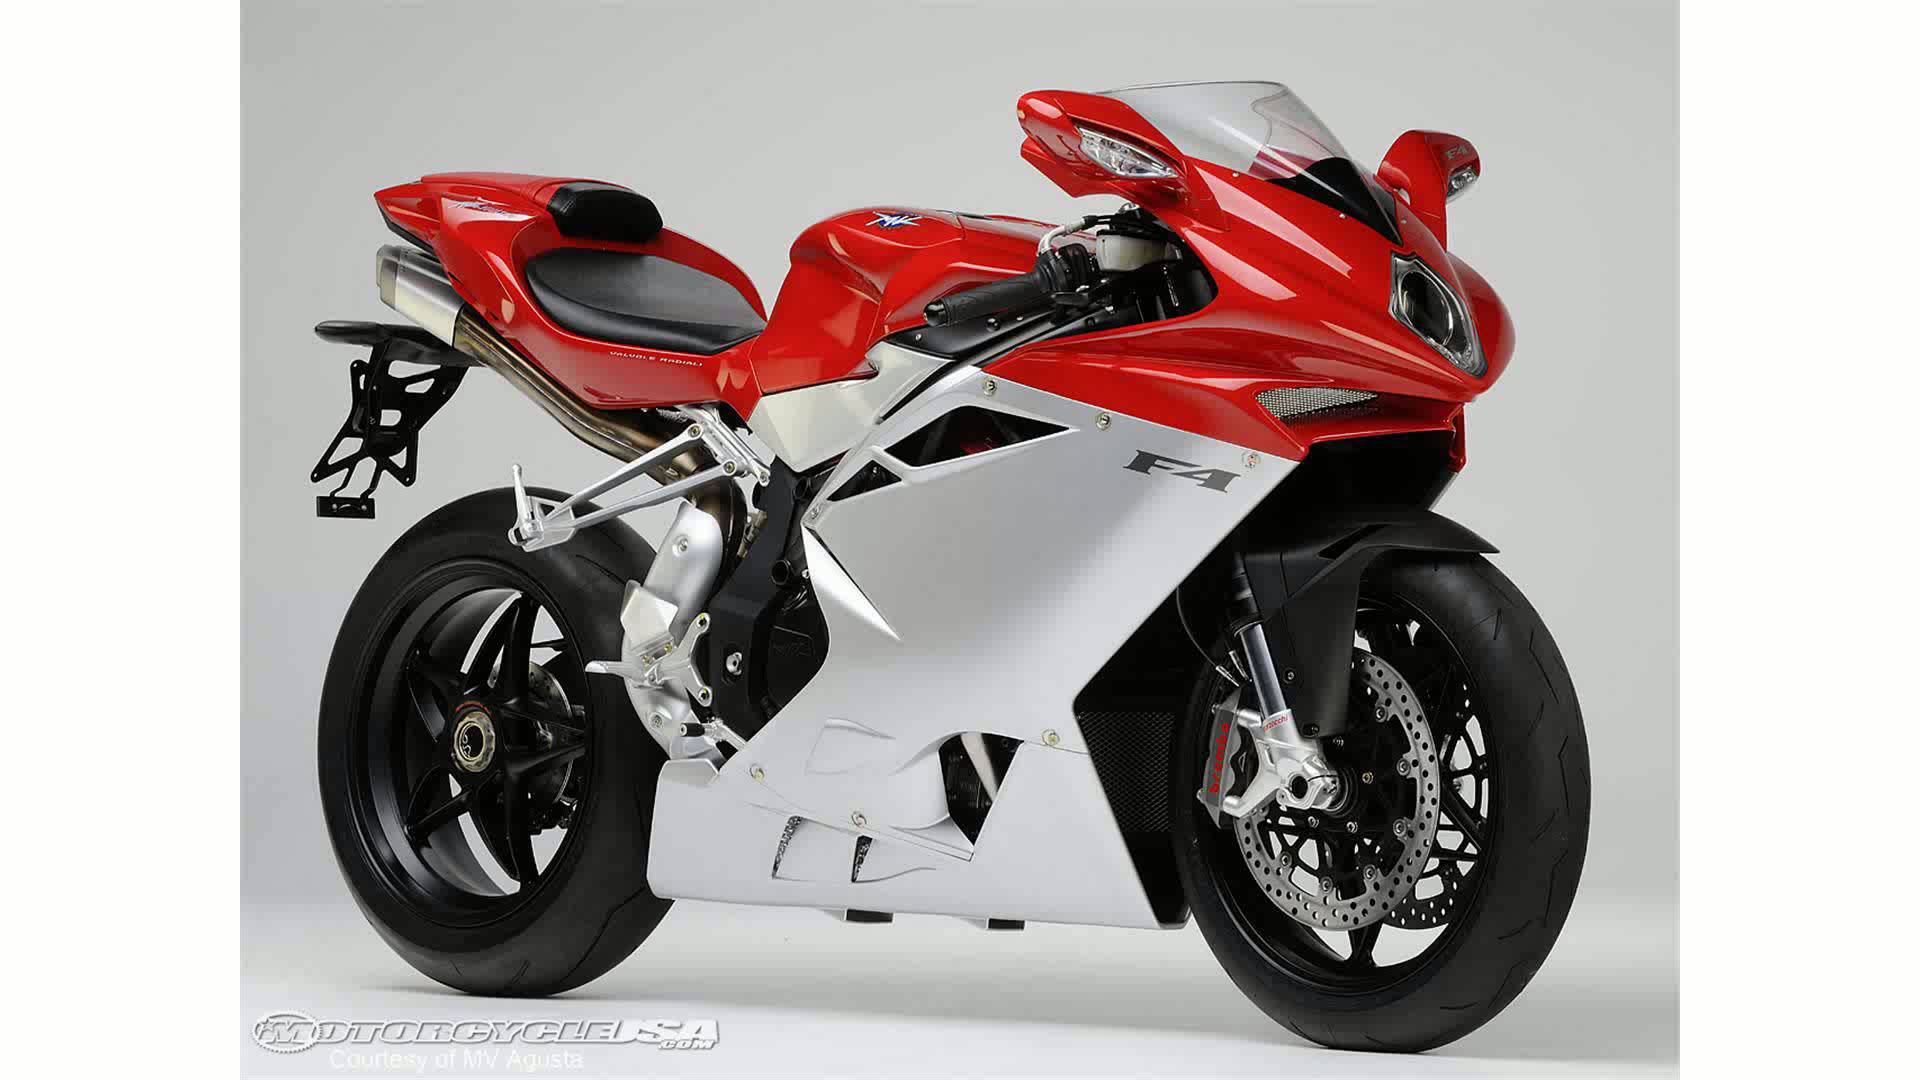 MV Agusta F4 1000 S 1+1 2005 images #117006